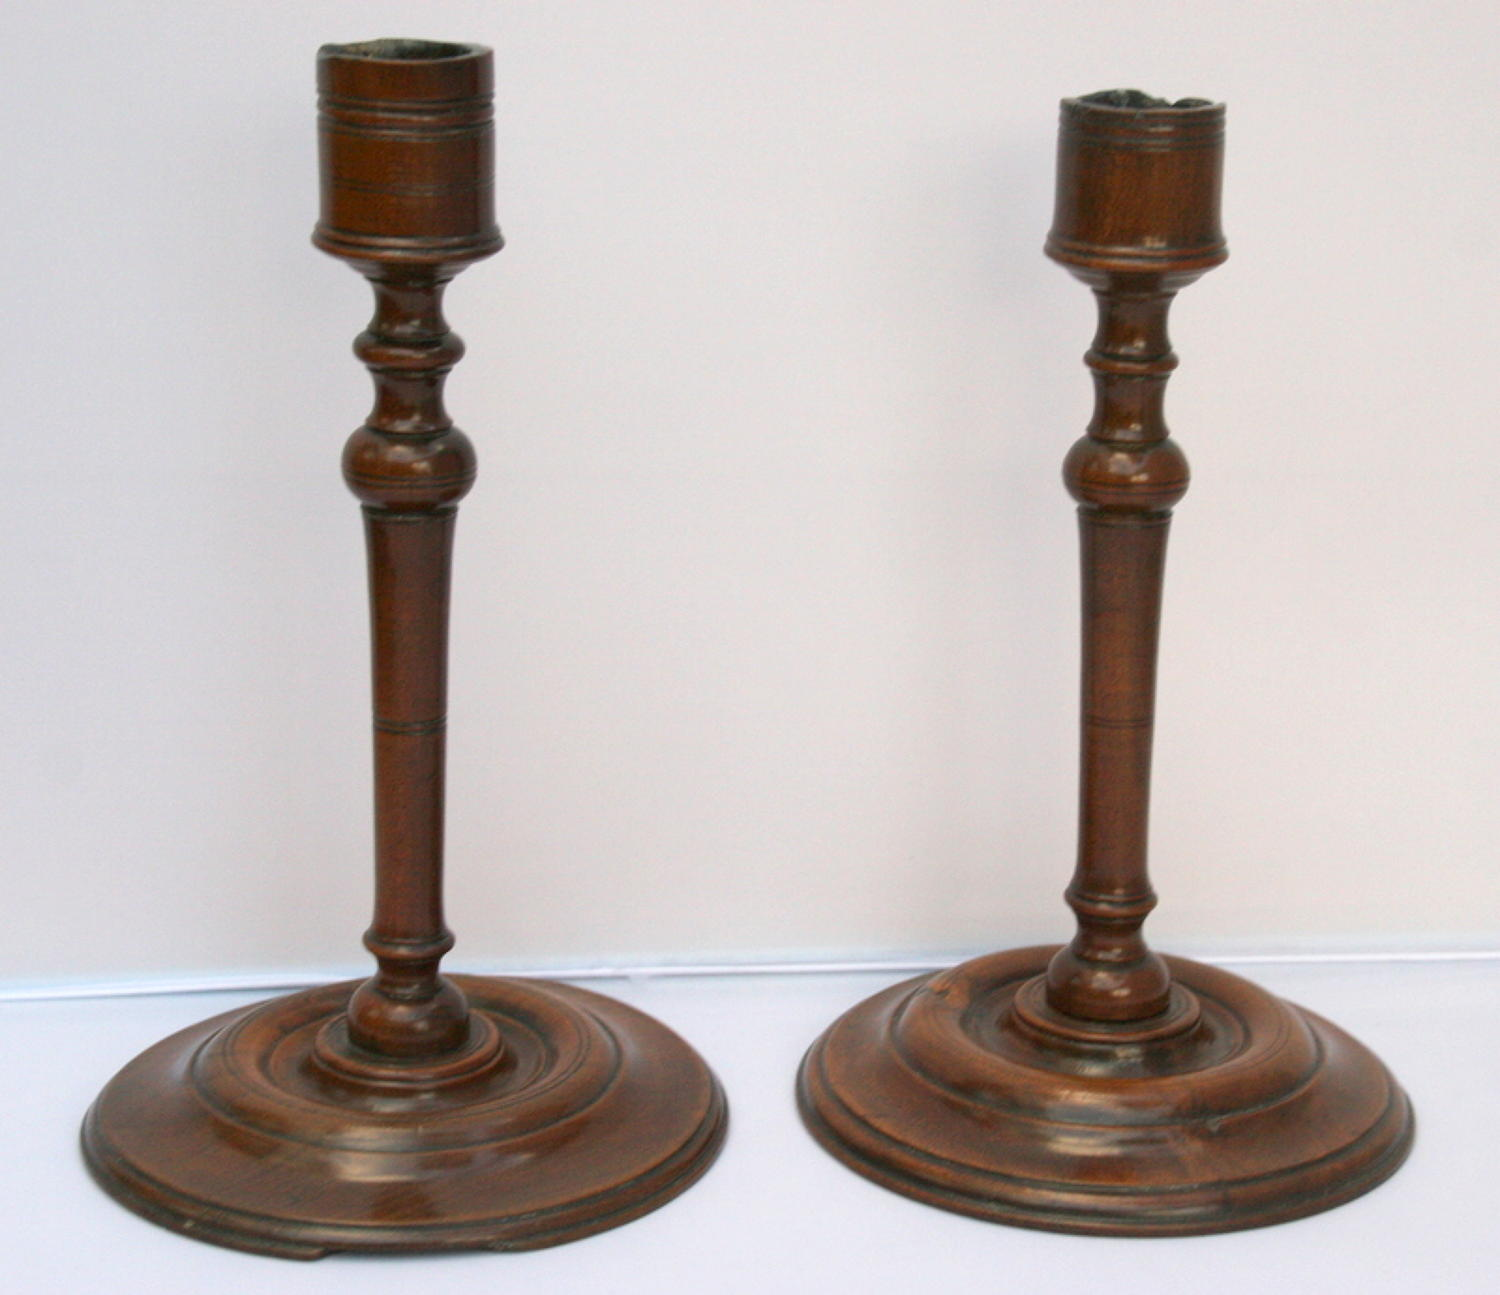 A fine and rare pair of English Candlesticks, Cherry wood, early 18th